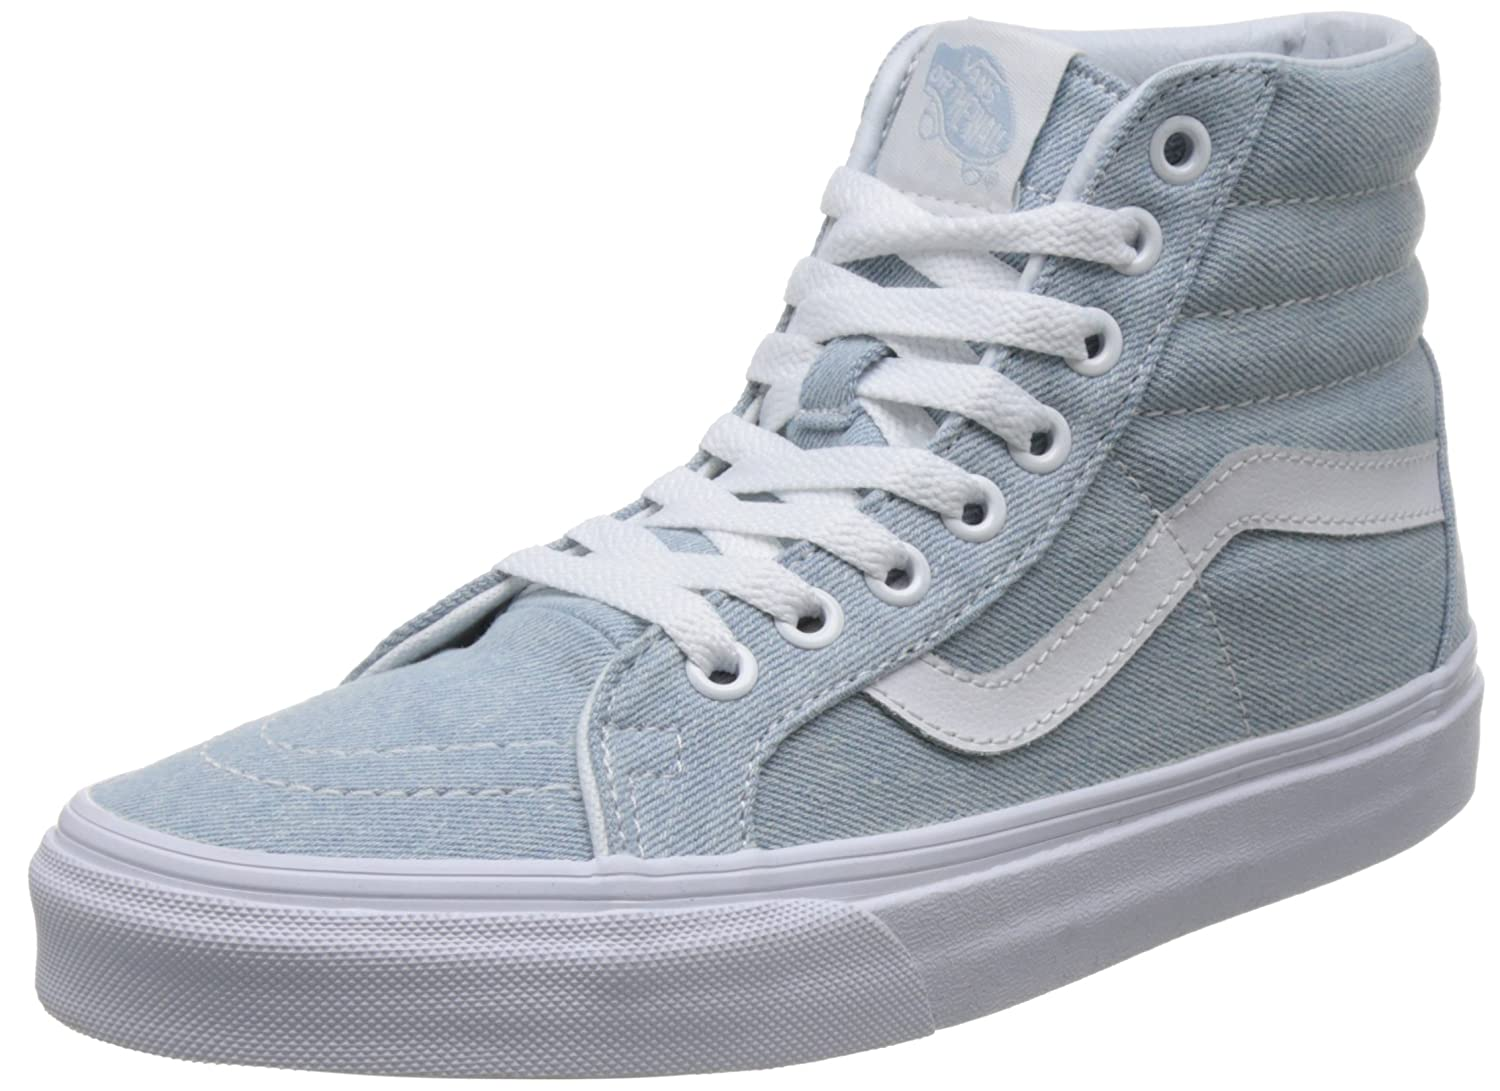 VANS MENS SK8 HI REISSUE LEATHER SHOES B076CV26VK 6 D(M) US / 7.5 B(M) US|Baby Blue